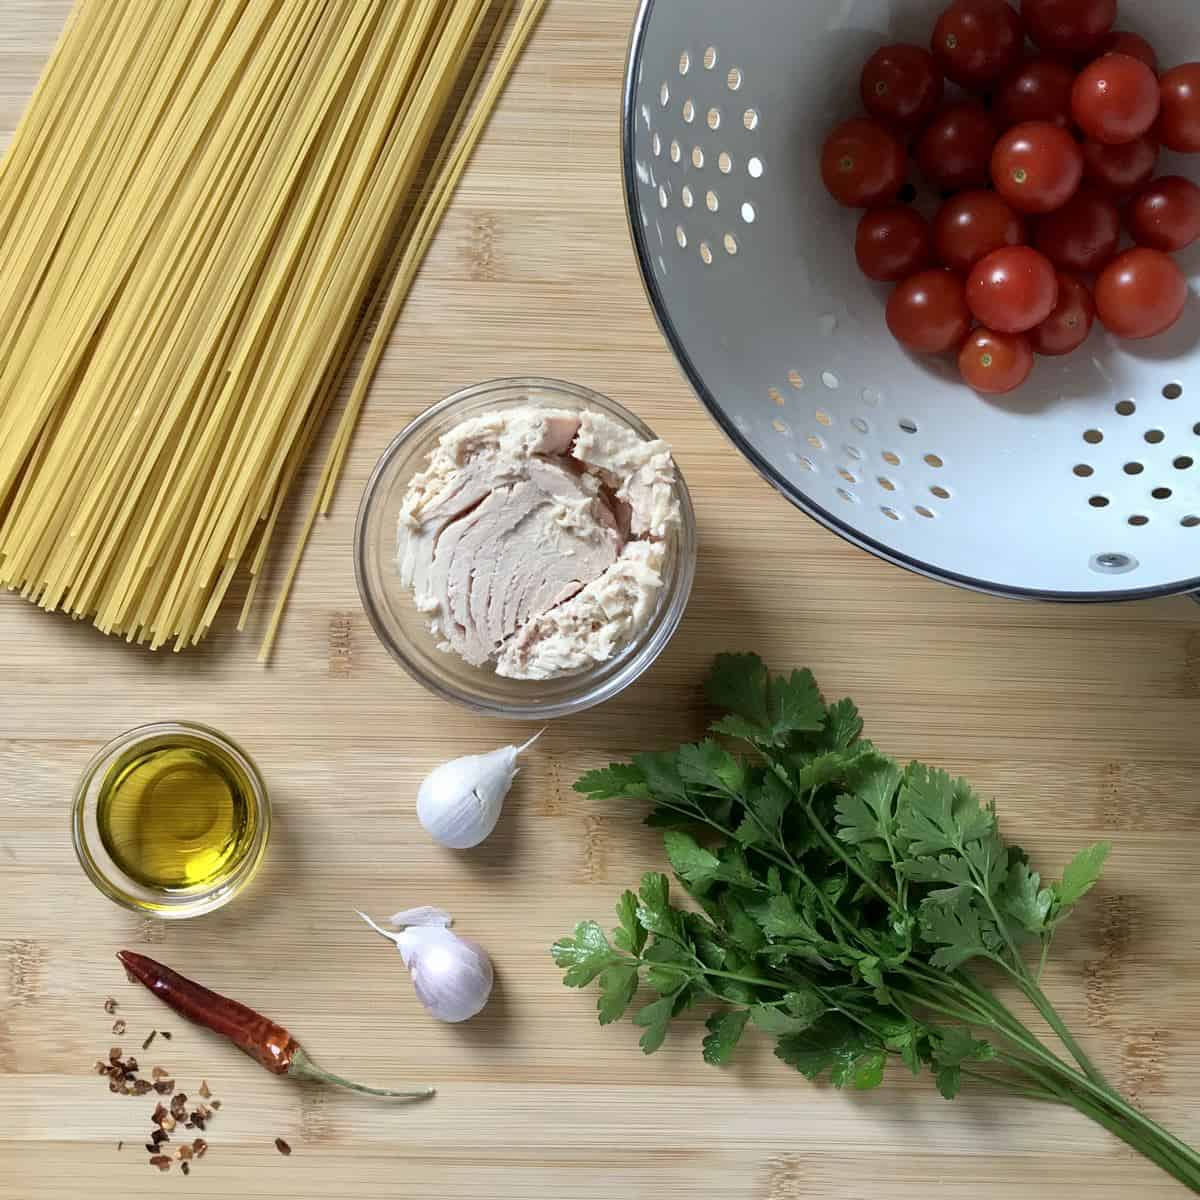 Some of the ingredients to make a tuna pasta recipe on a wooden table.